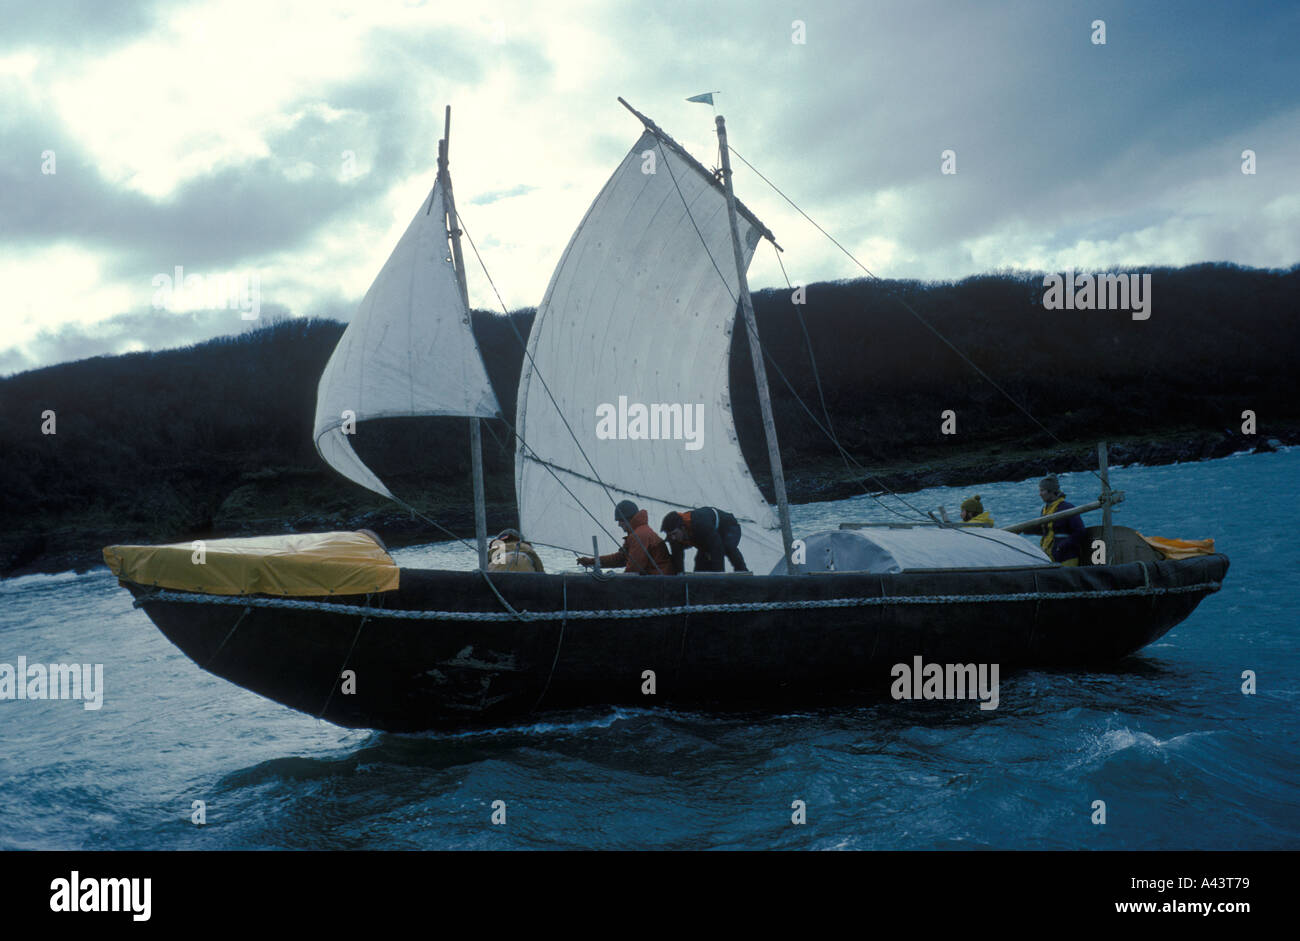 Tim Severin The Voyage of Brendan the Navigator 1976 sailed to North America in a leather boat. HOMER SYKES - Stock Image